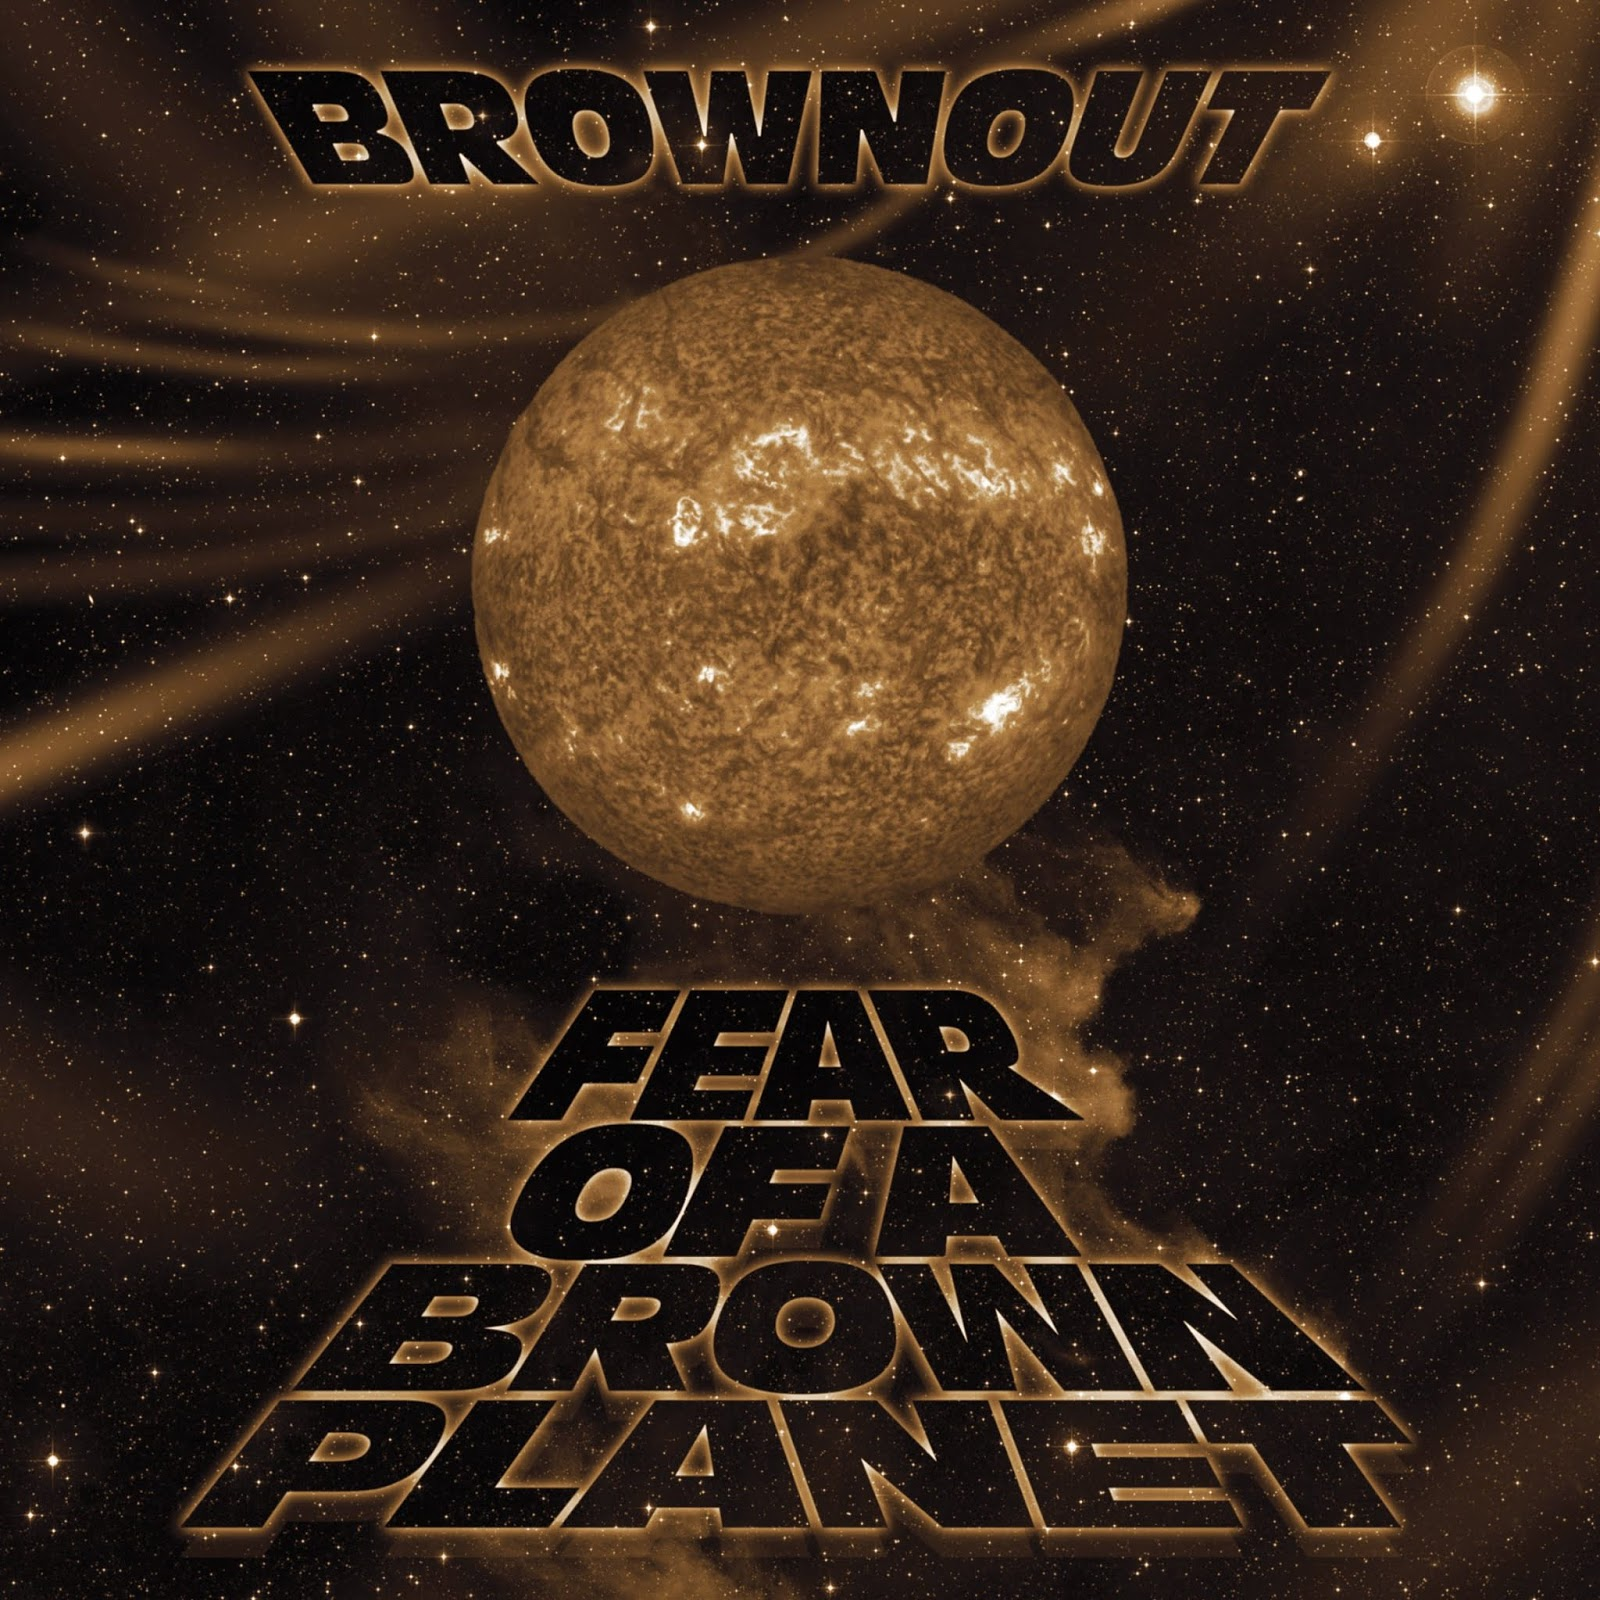 Brownout- Fear Of A Brown Planet | Die Public Enemy Version der Latin-Funk-Soul-Breaks Super Group Brownout im Full Album Stream und DJ Eclipse Mix